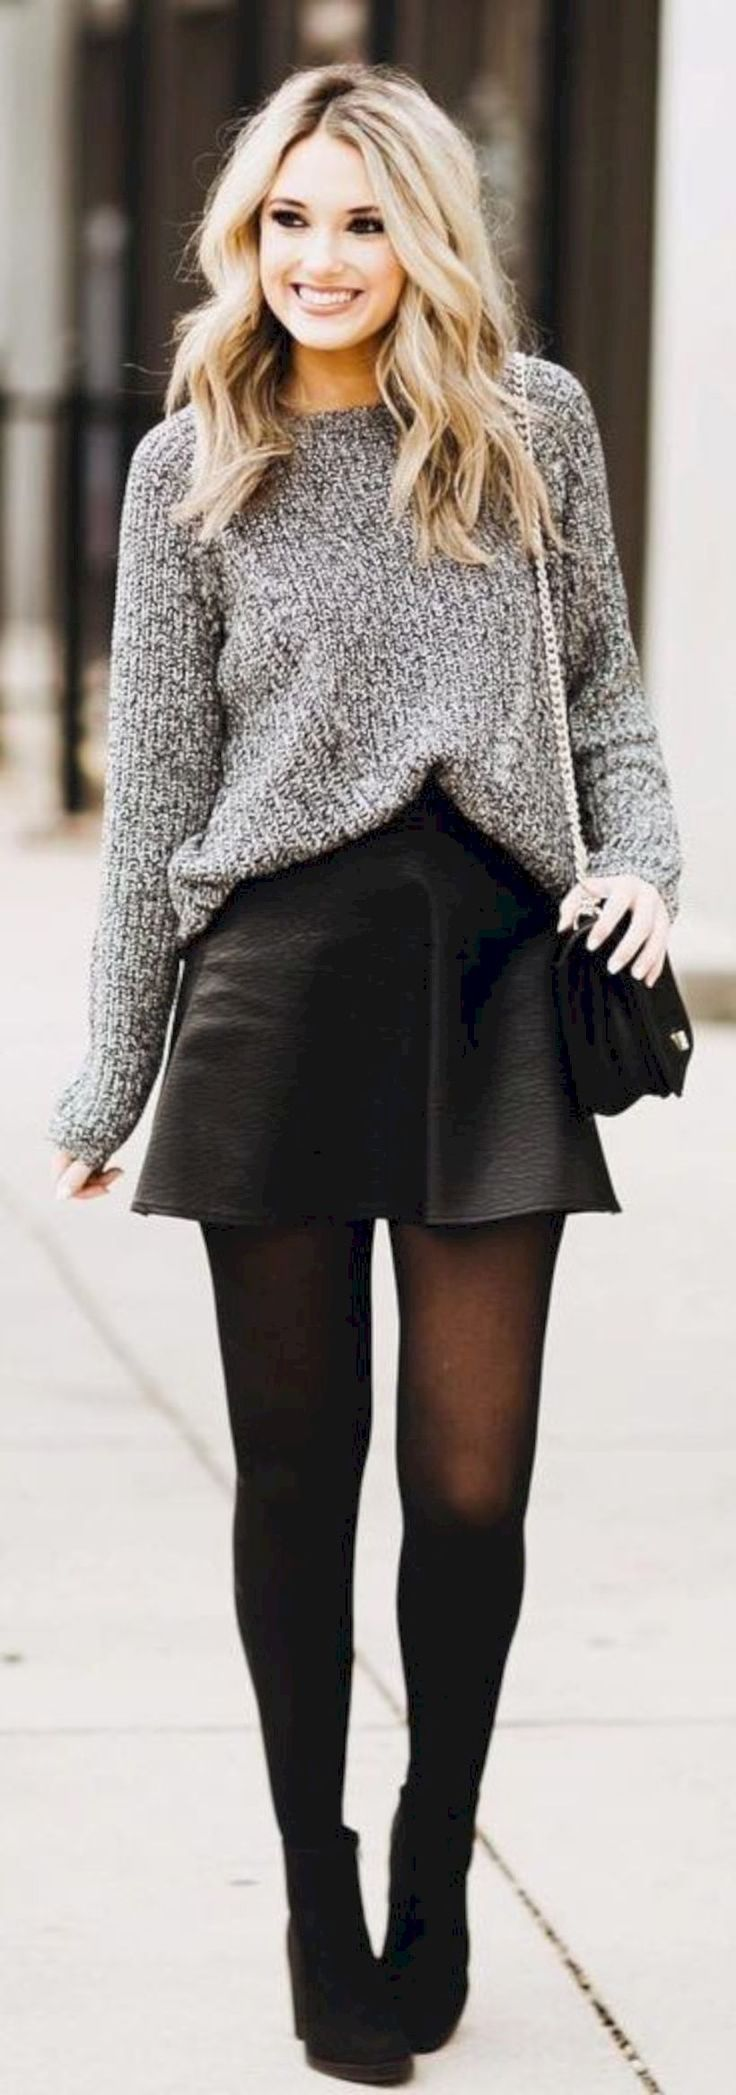 fine 45 Inspiring Work Wear Outfits for This Winter https://attirepin.com/2017/11/19/45-inspiring-work-wear-outfits-winter/